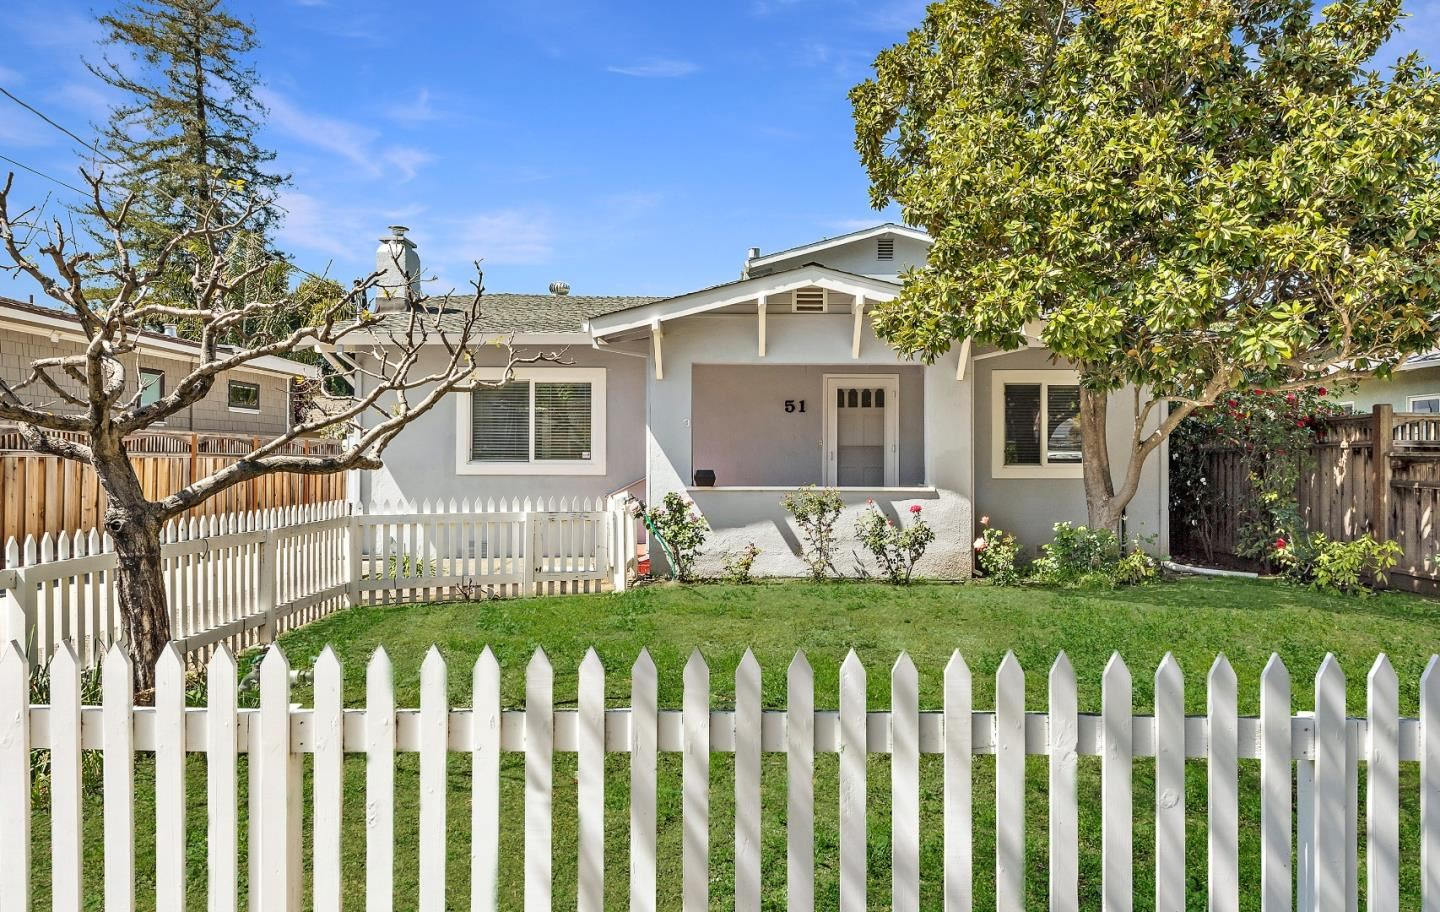 Photo for 51 Whitney AVE, LOS GATOS, CA 95030 (MLS # ML81836243)